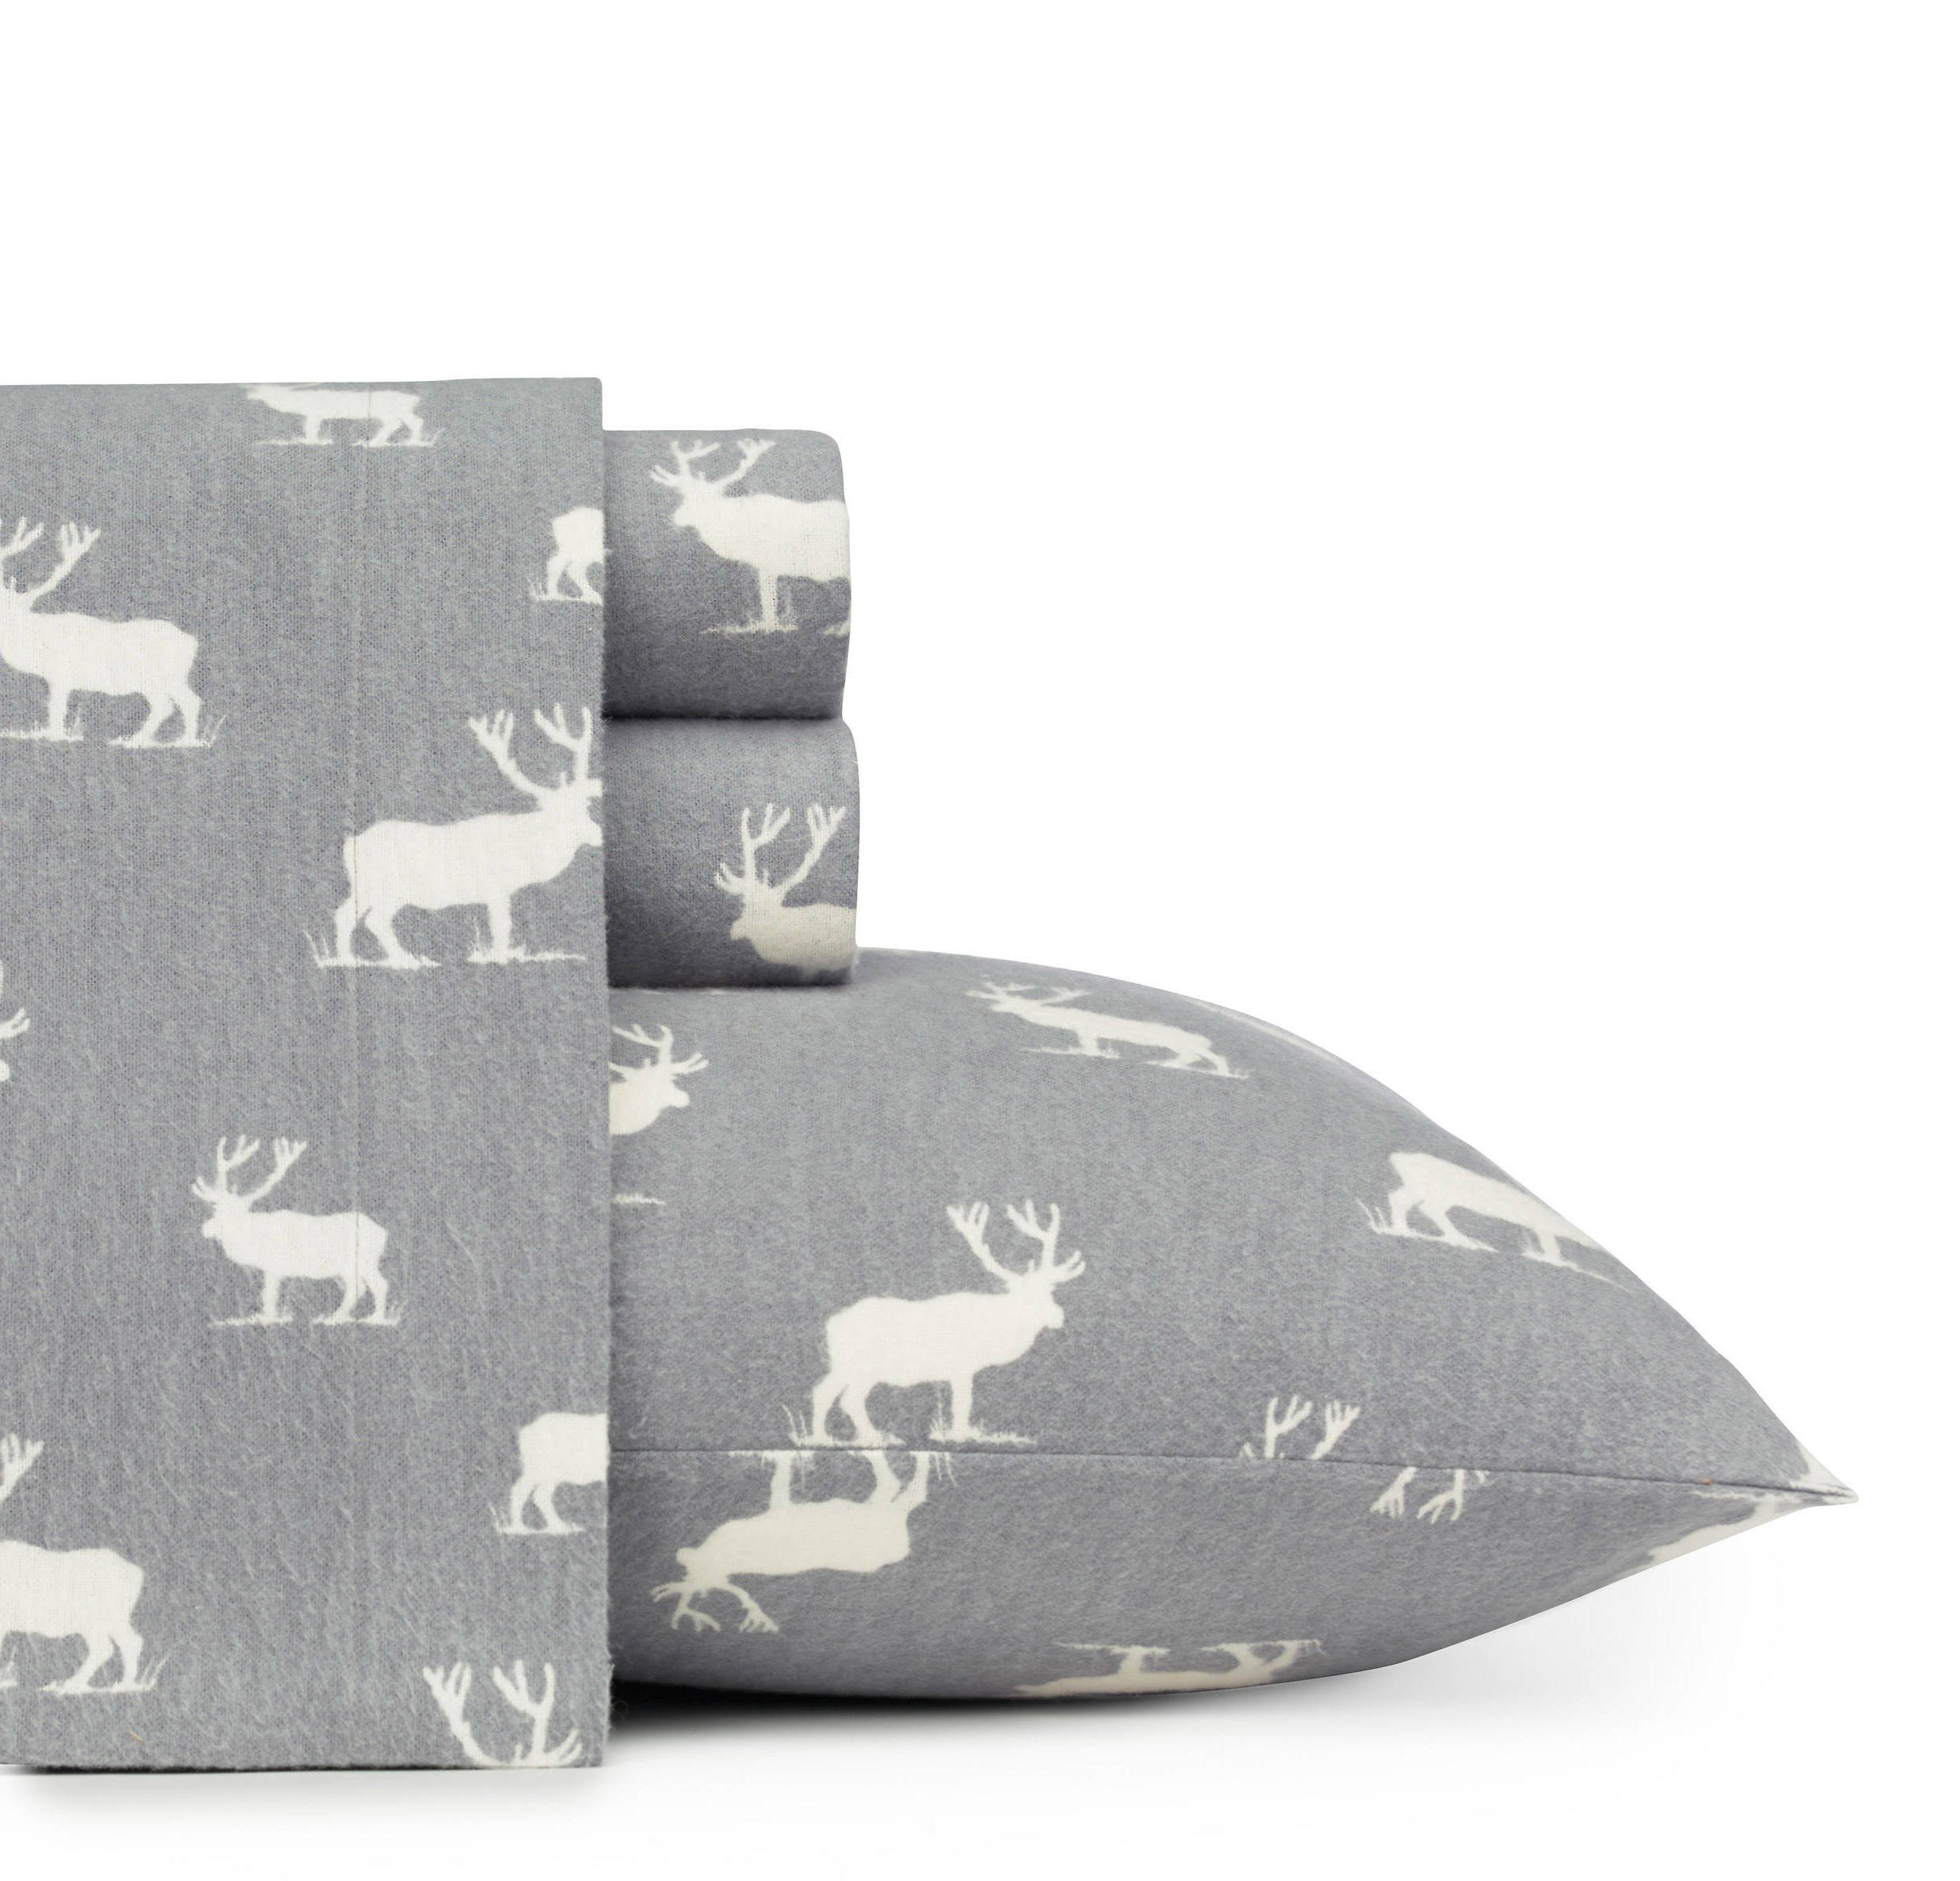 D&A 4 Piece Rustic Grey Elk Deer Theme Sheets King Set, Beautiful Animal, Cabin Lodge Cottage, Southwestern Print, Fully Elasticized Fitted, Deep Pocket, Cotton Flannel by D&A (Image #1)